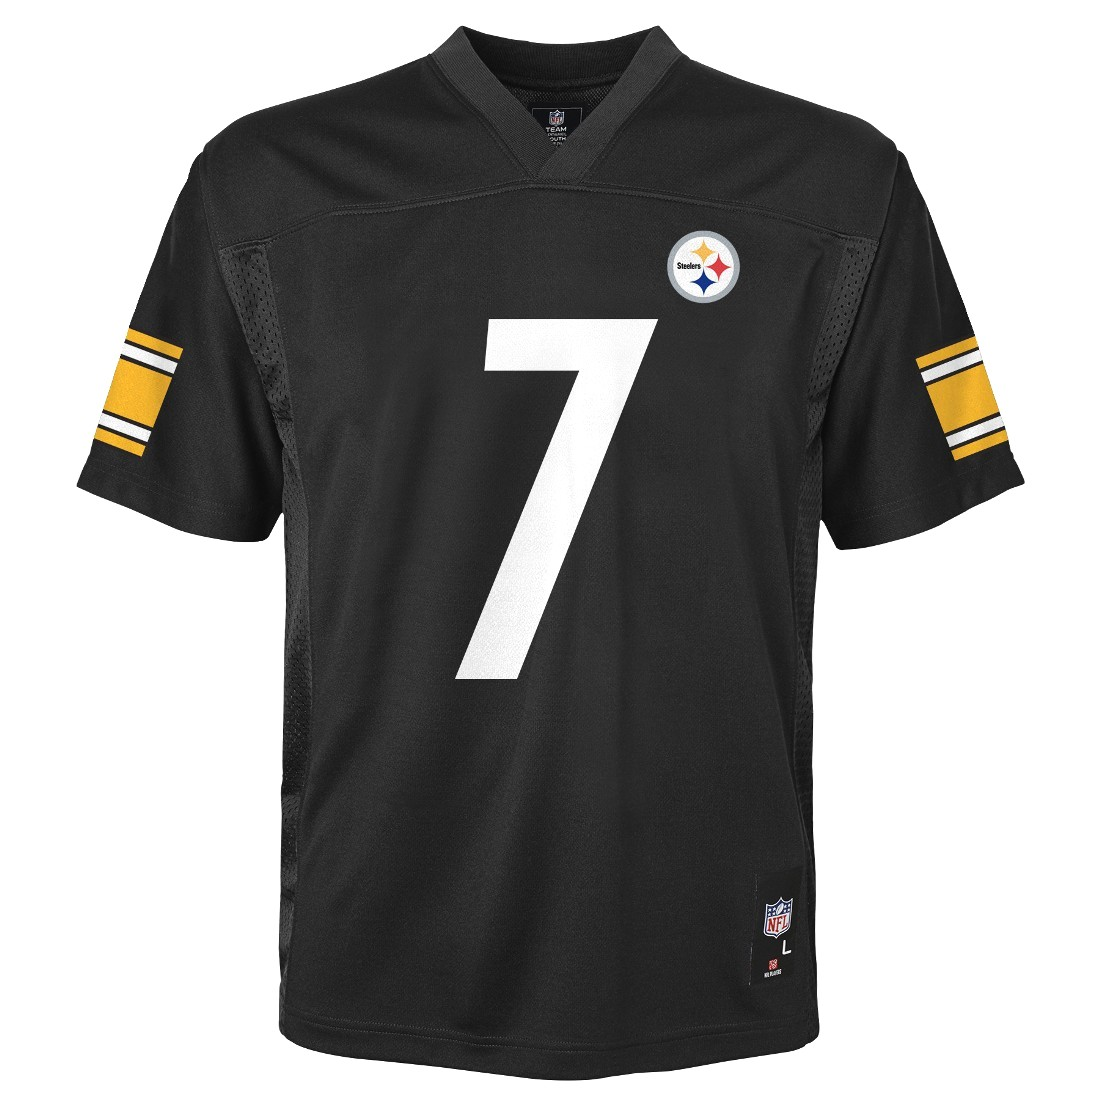 Ben Roethlisberger Pittsburgh Steelers Youth NFL Mid Tier Replica Jersey